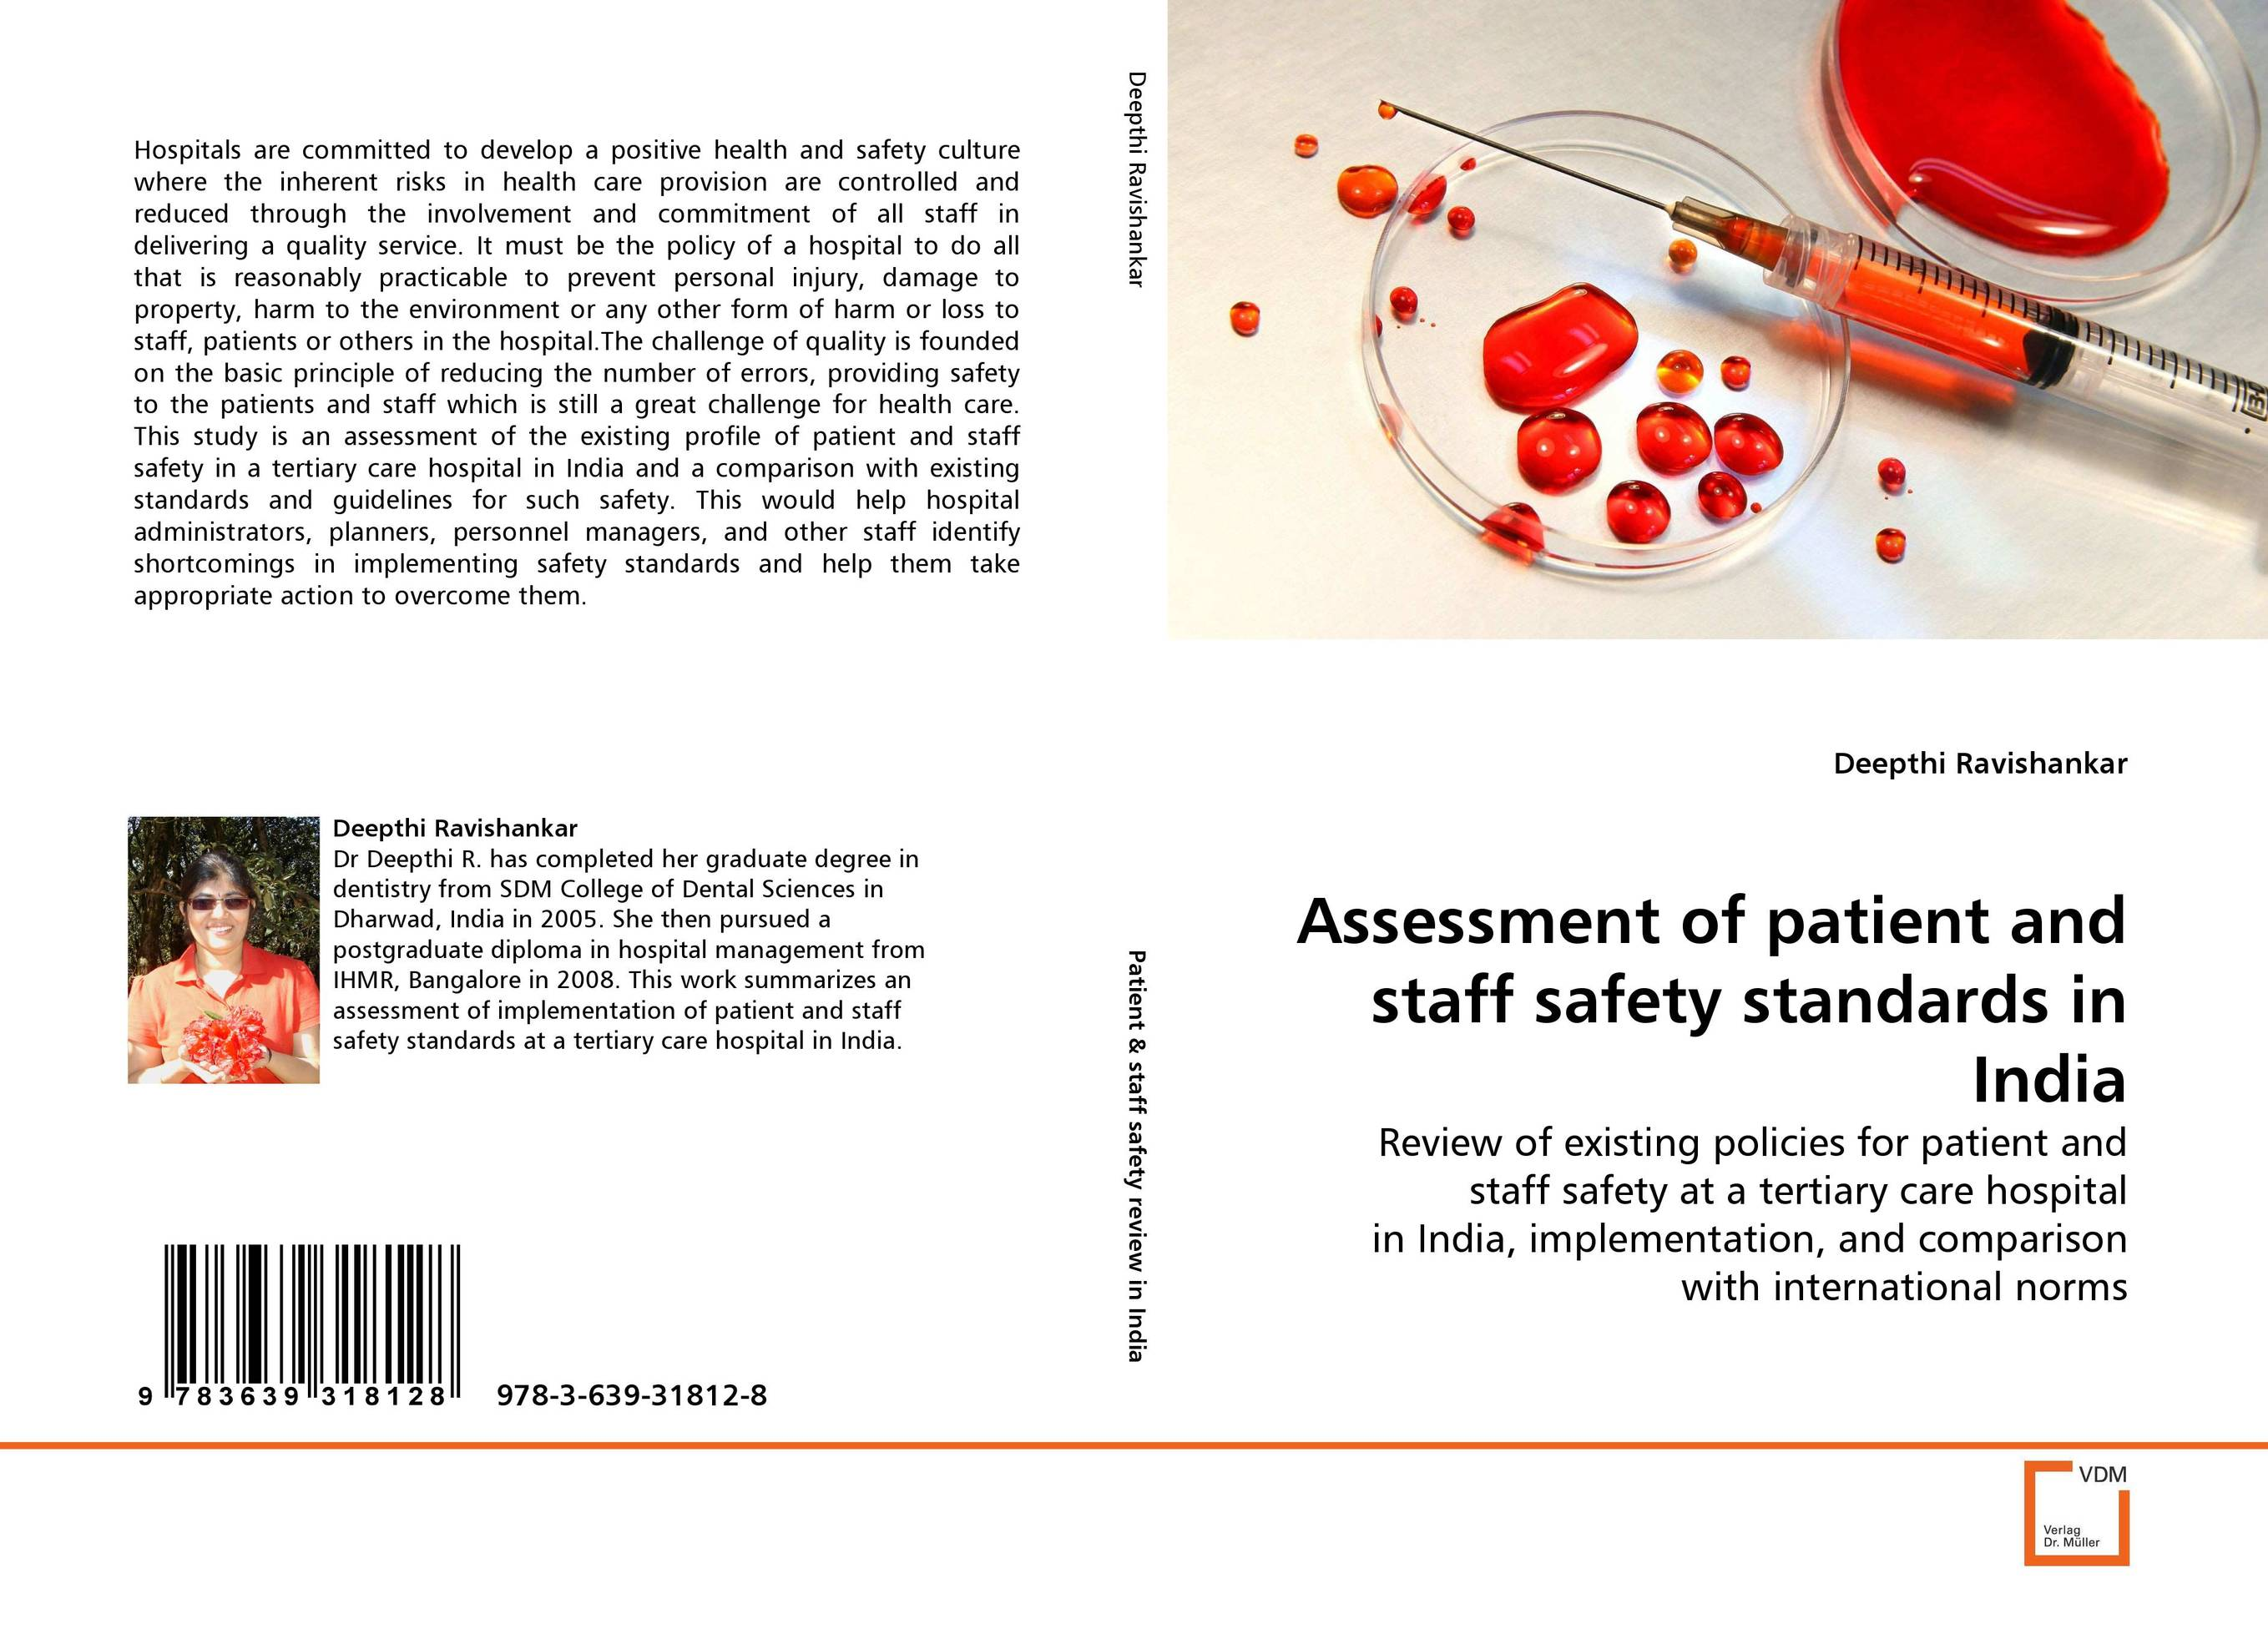 Assessment of patient and staff safety standards in India assessment of patient and staff safety standards in india